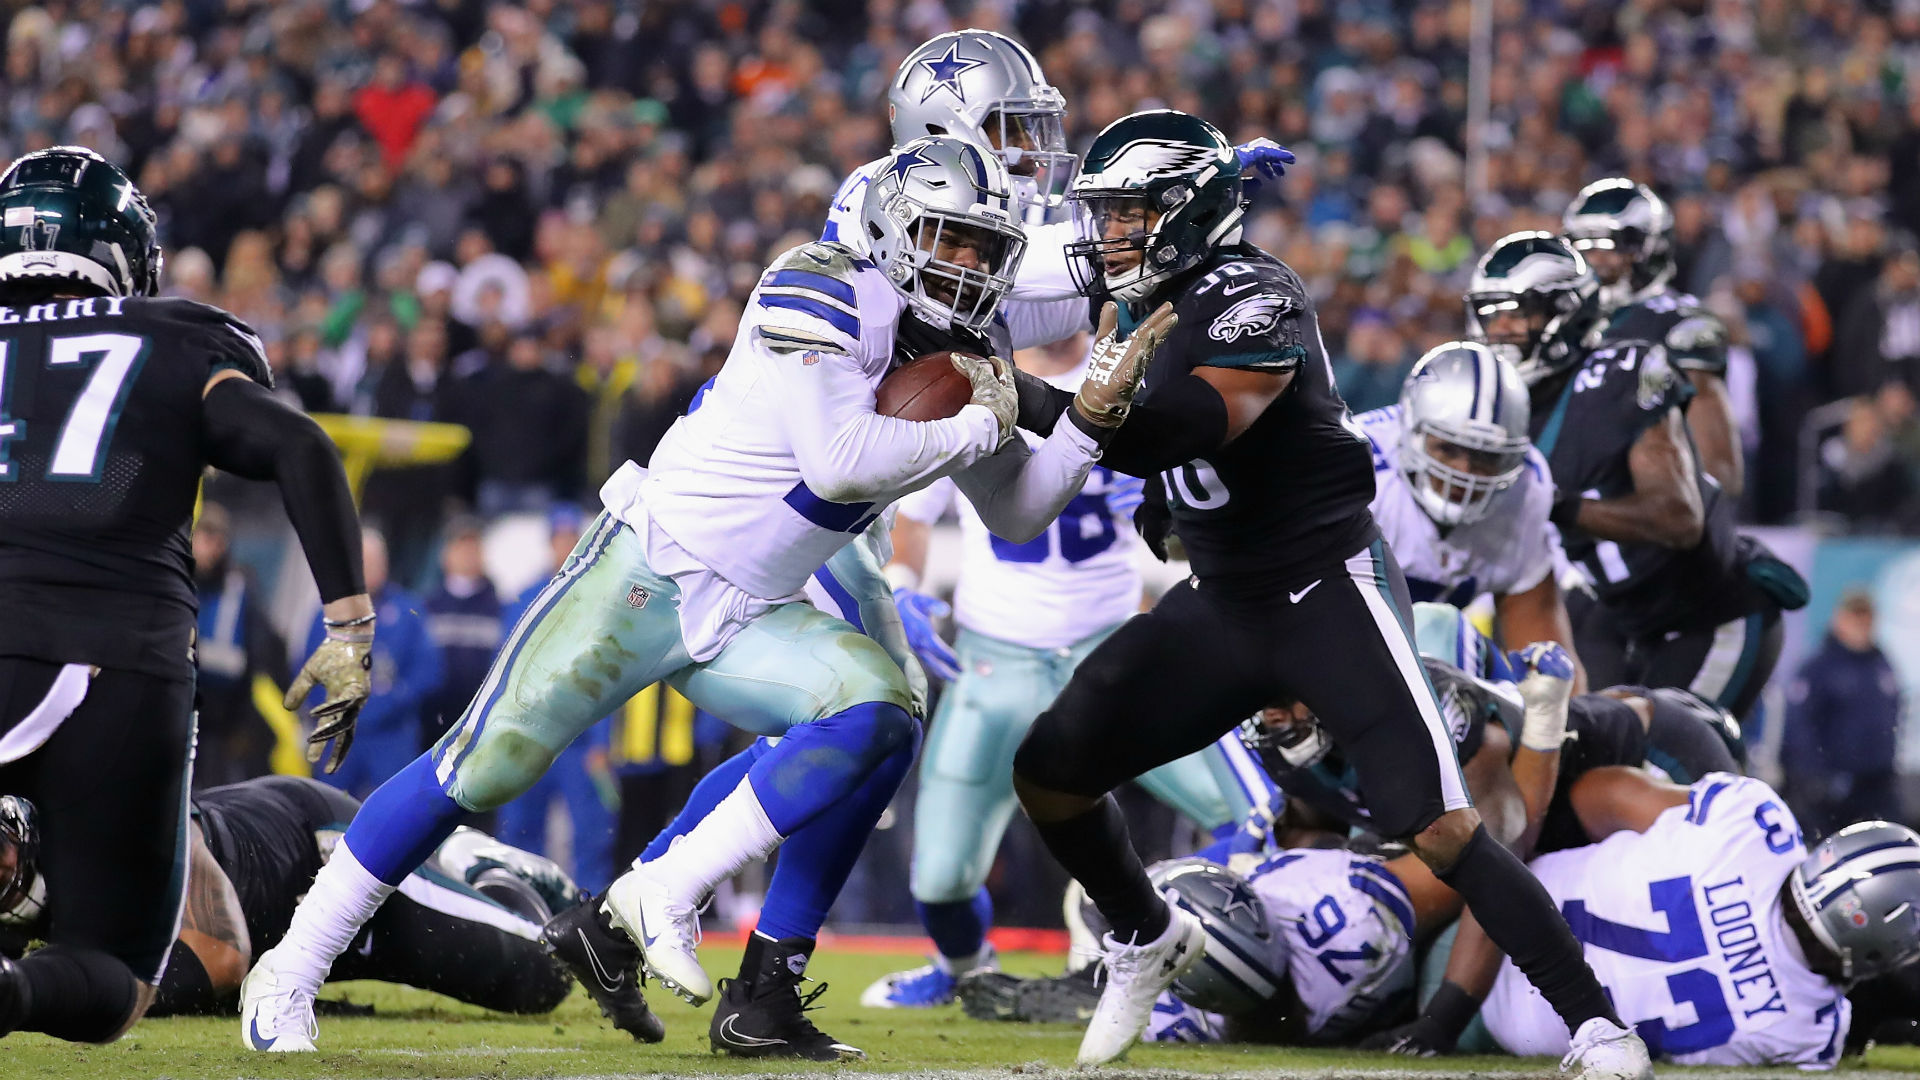 7d8d5383e Cowboys vs. Eagles: Score, live updates, highlights | Sporting News